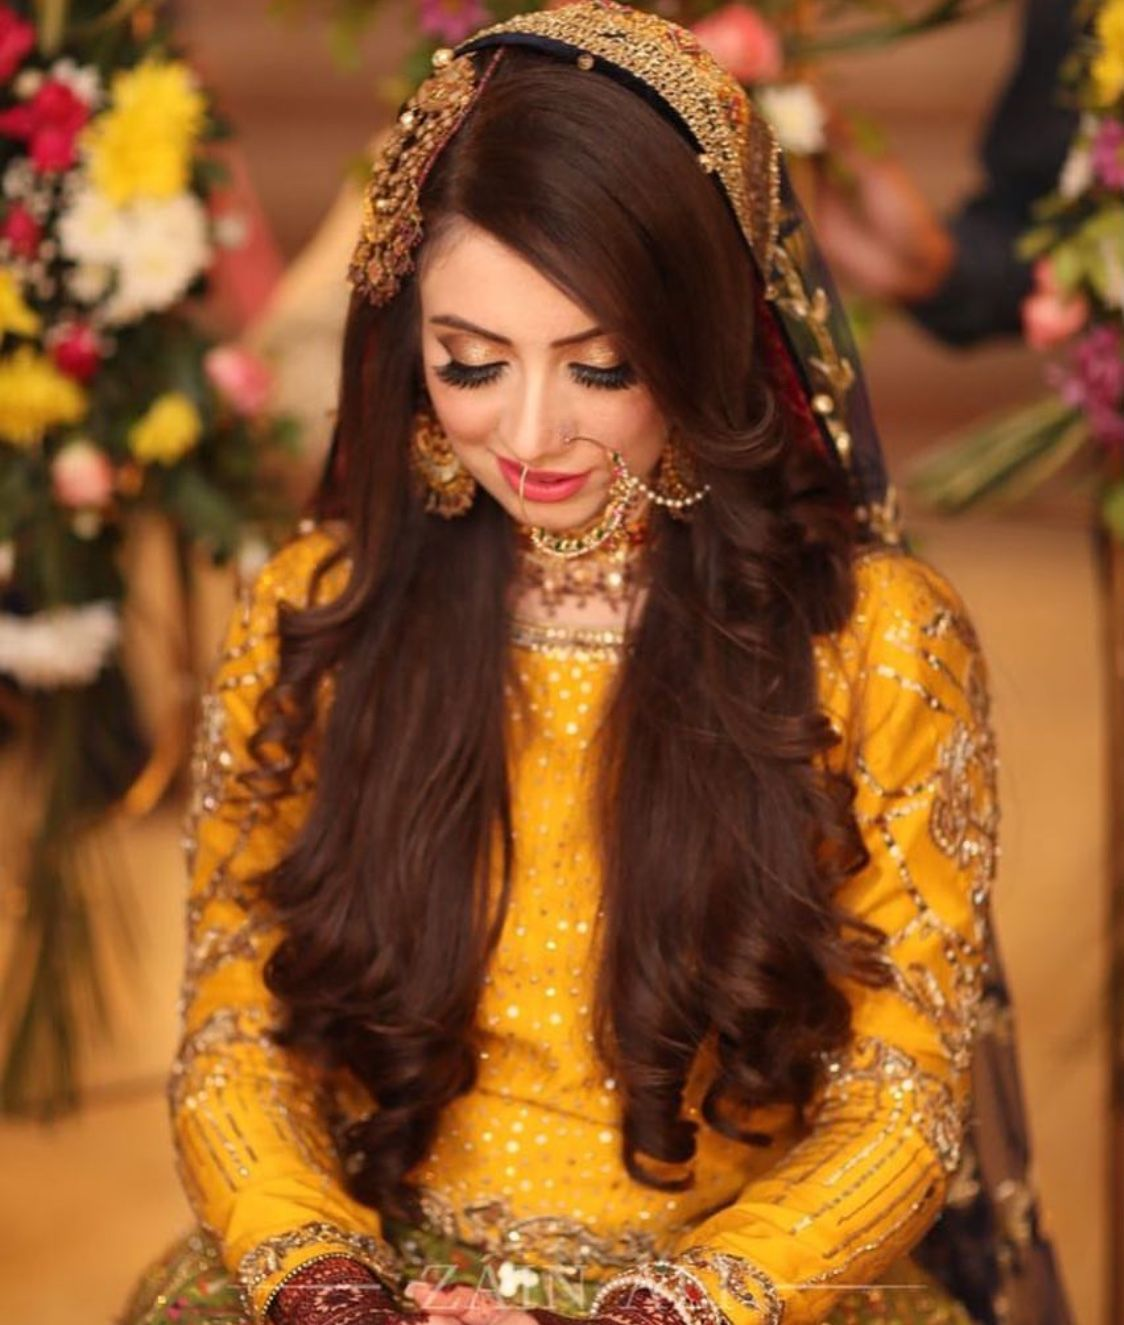 Wedding Hairstyle Pakistani: Pin By Maria Khalid On Pakistani Fashion